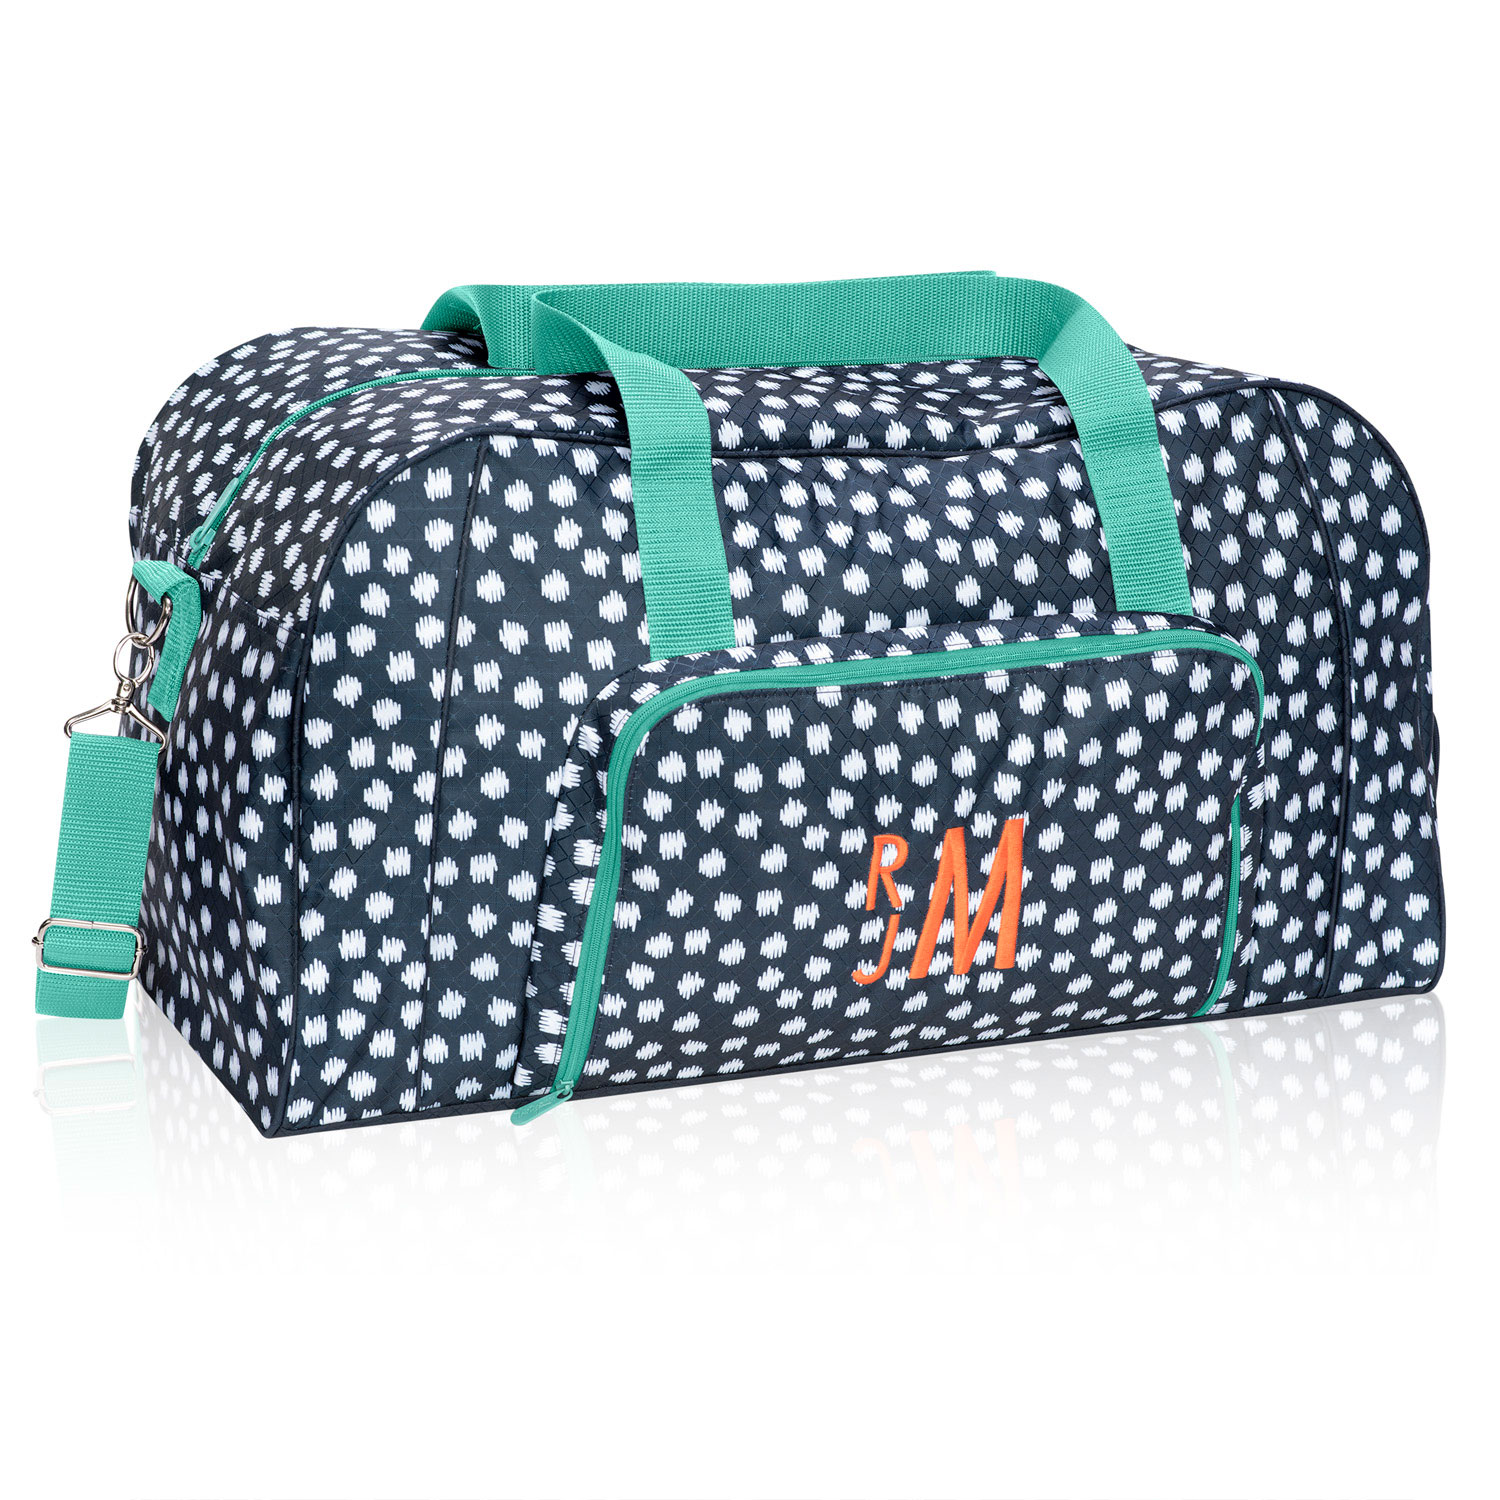 $49.99 (reg $80) All Packed Du...